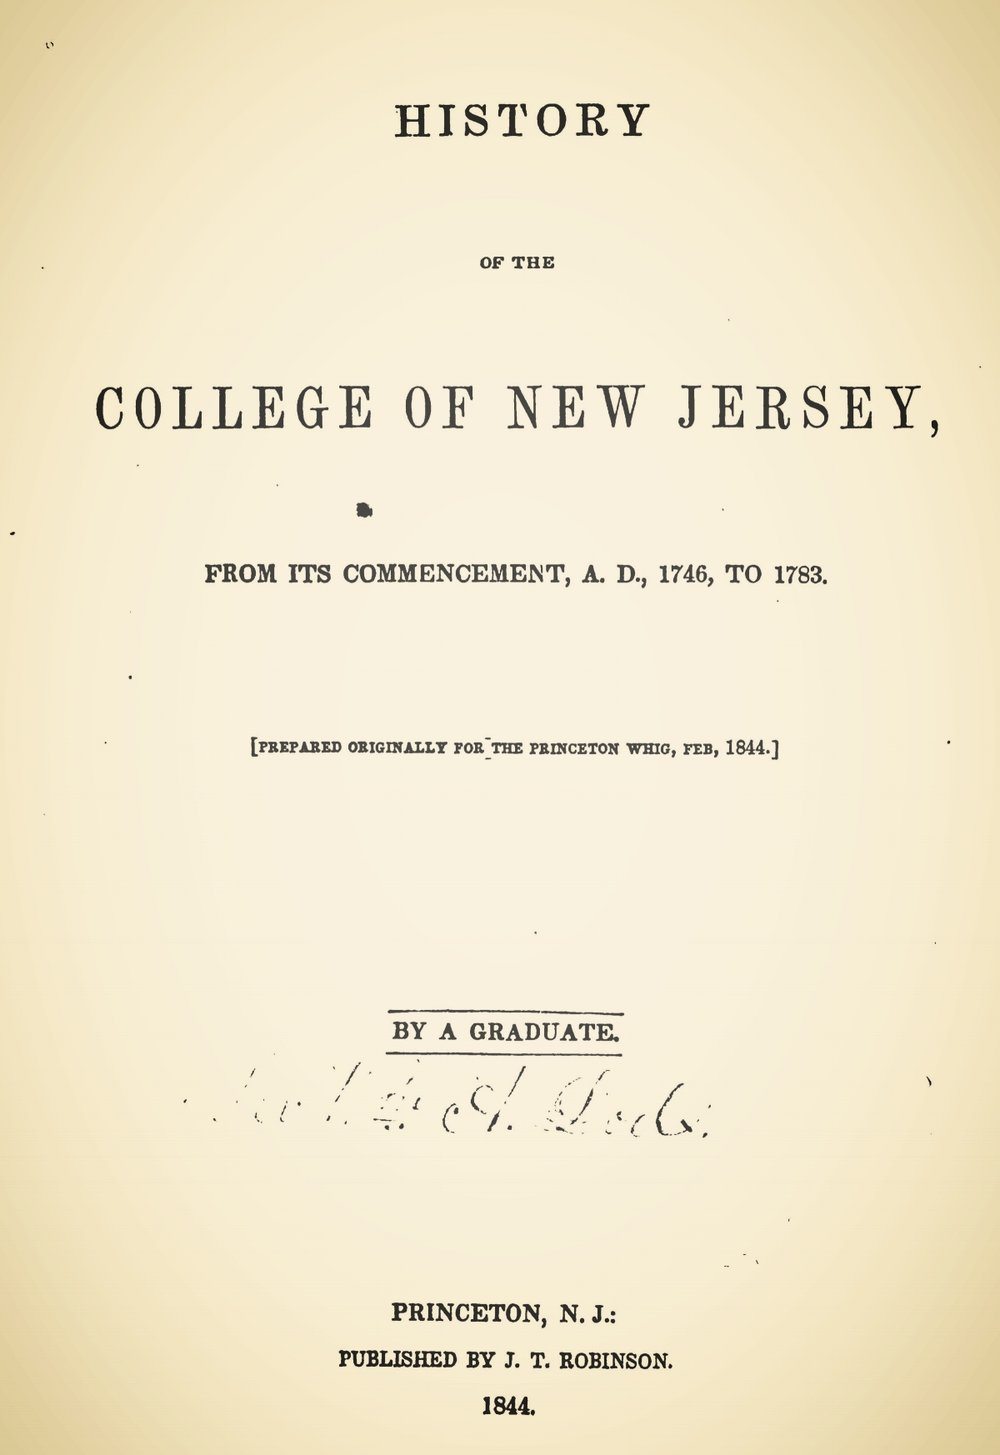 Dod, William Armstrong, History of the College of New Jersey Title Page.jpg